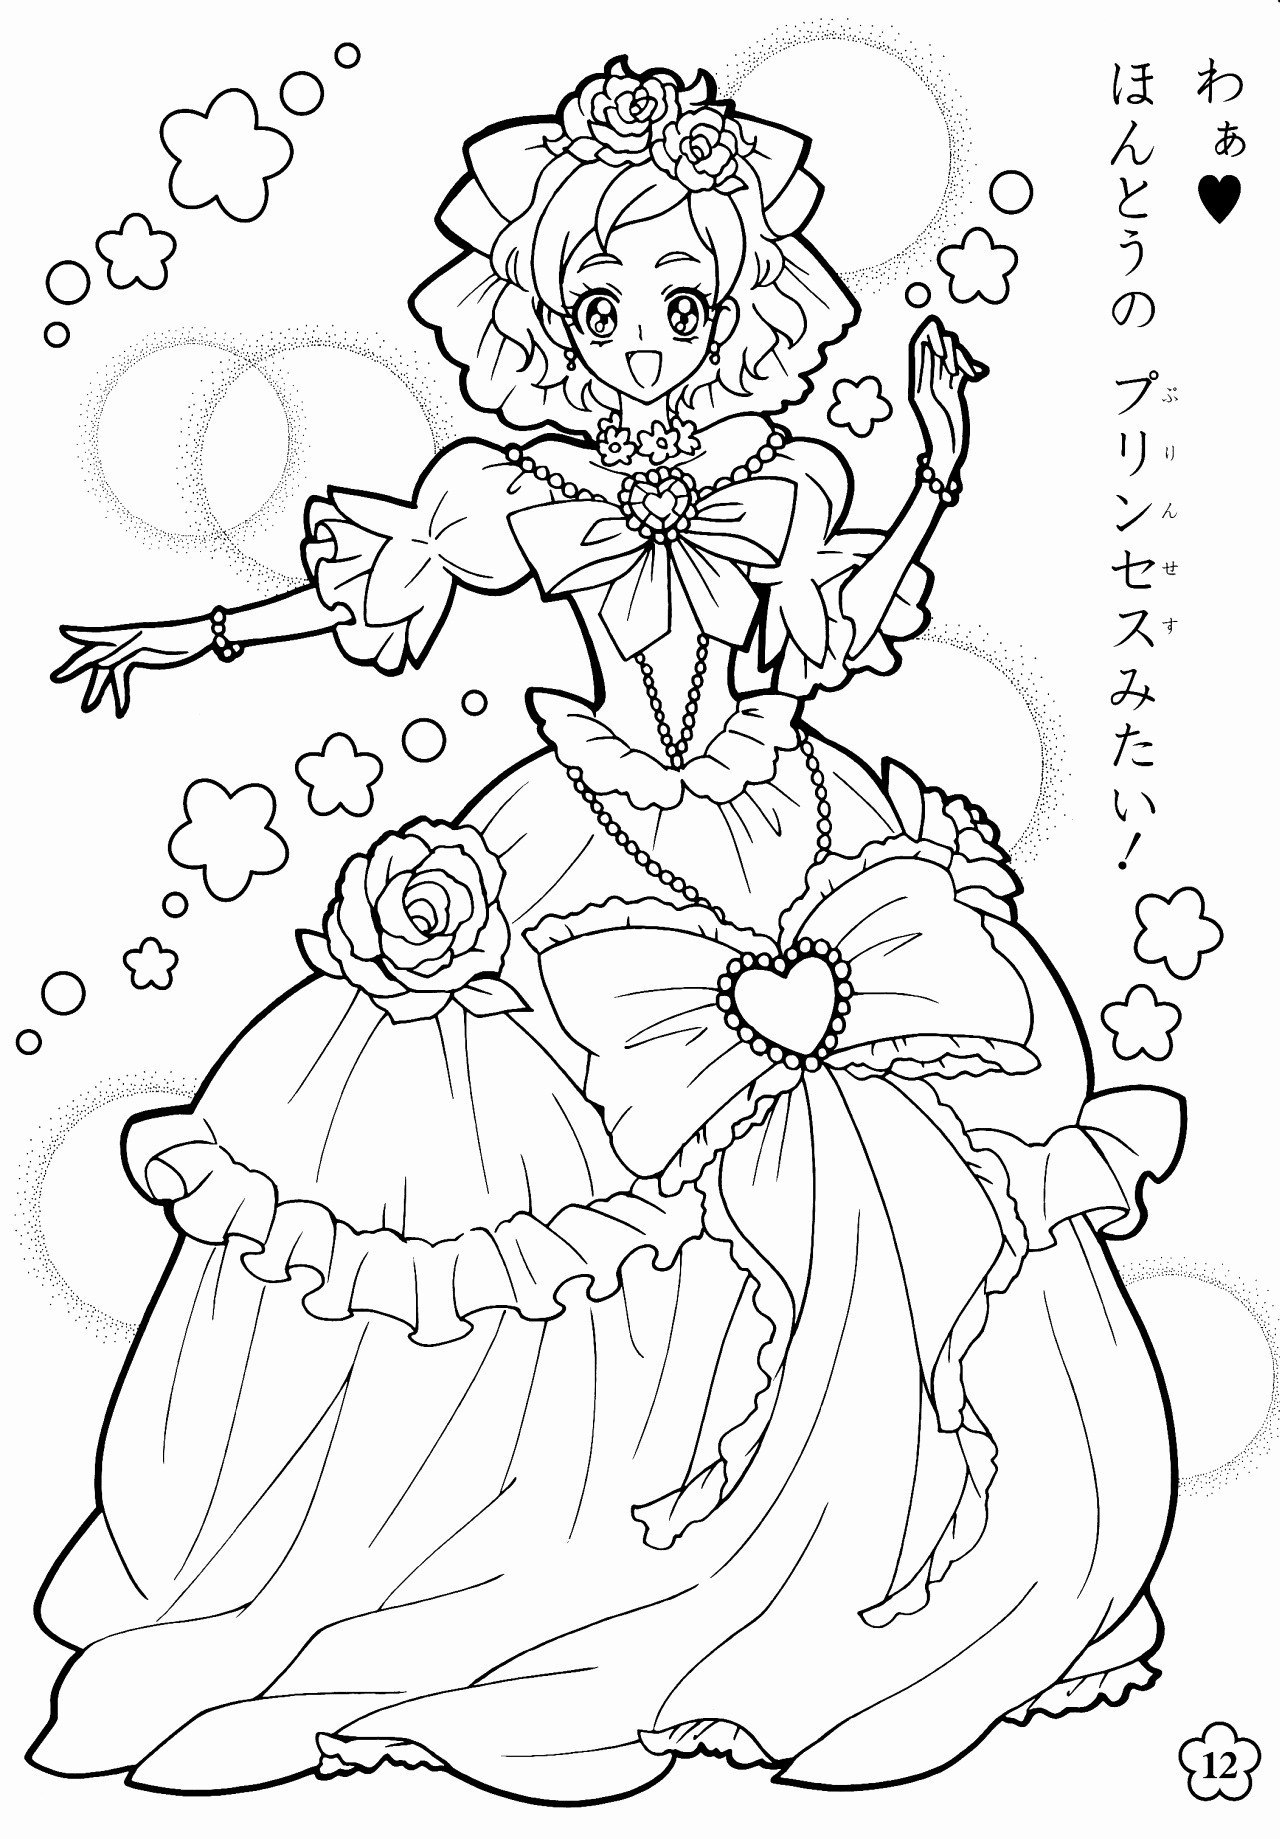 frecklebox coloring pages Download-Coloring Pages Luxury Cool Coloring Page Unique Witch Coloring 10-r